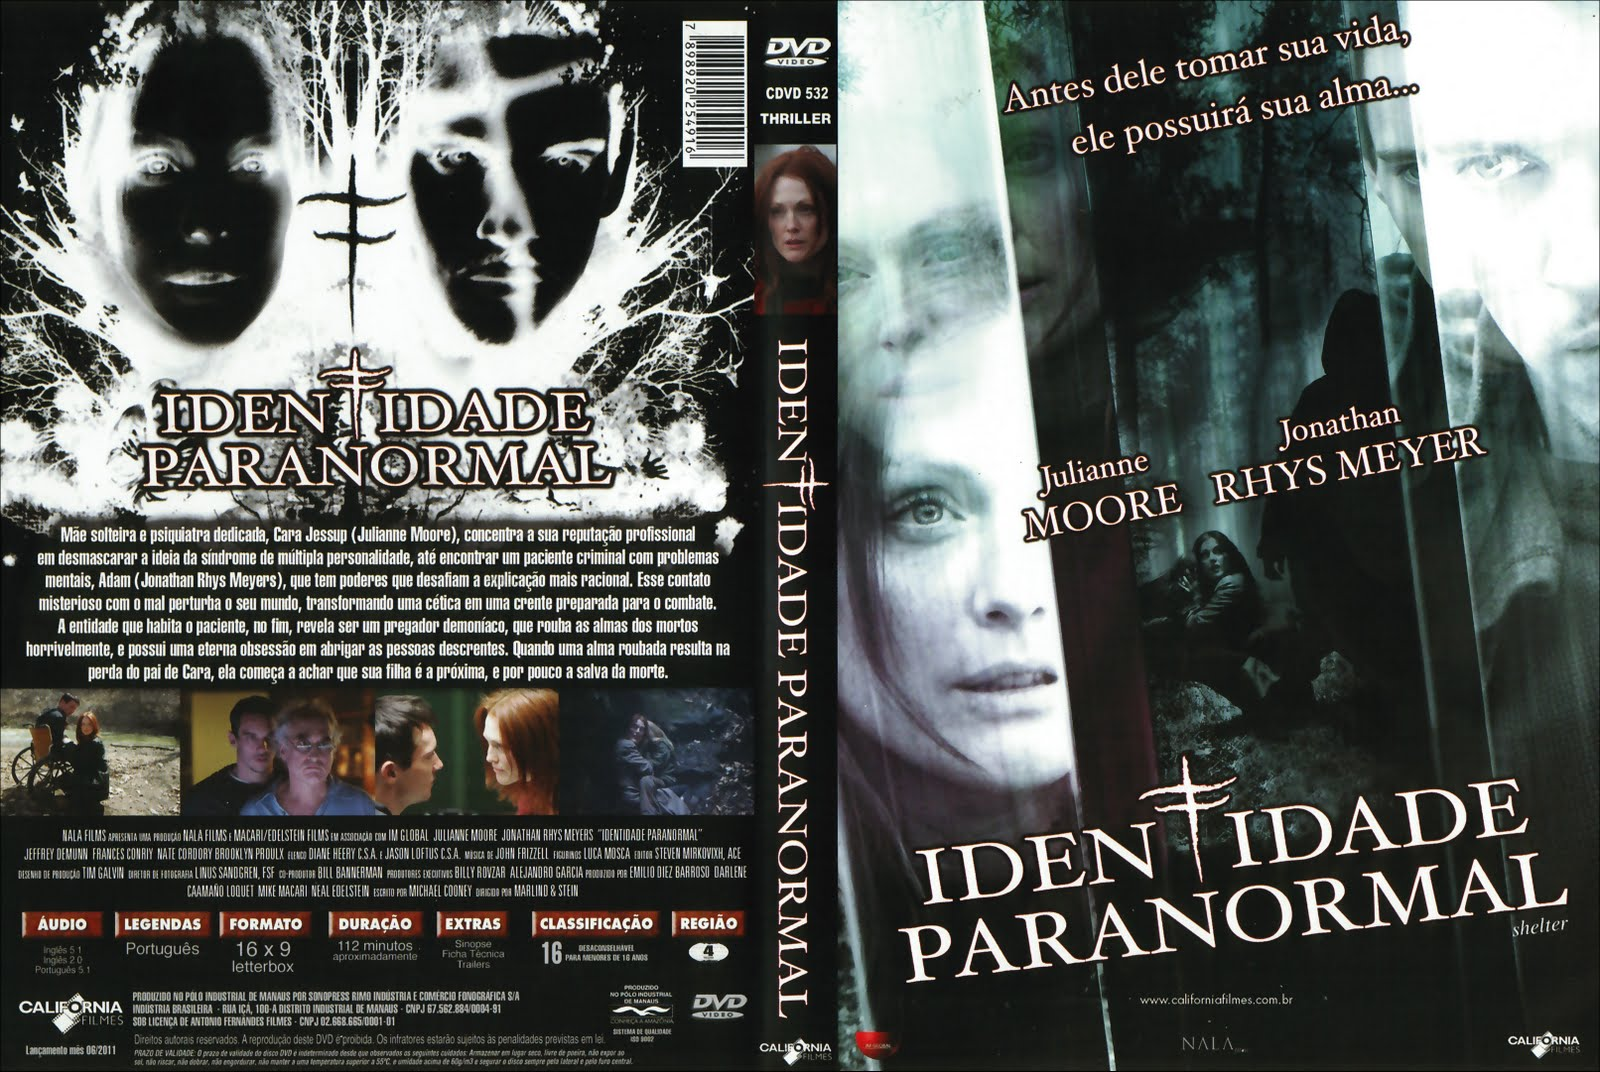 Capa do Identidade Paranormal Blu ray Dublado Torrent + MEGAfilmes